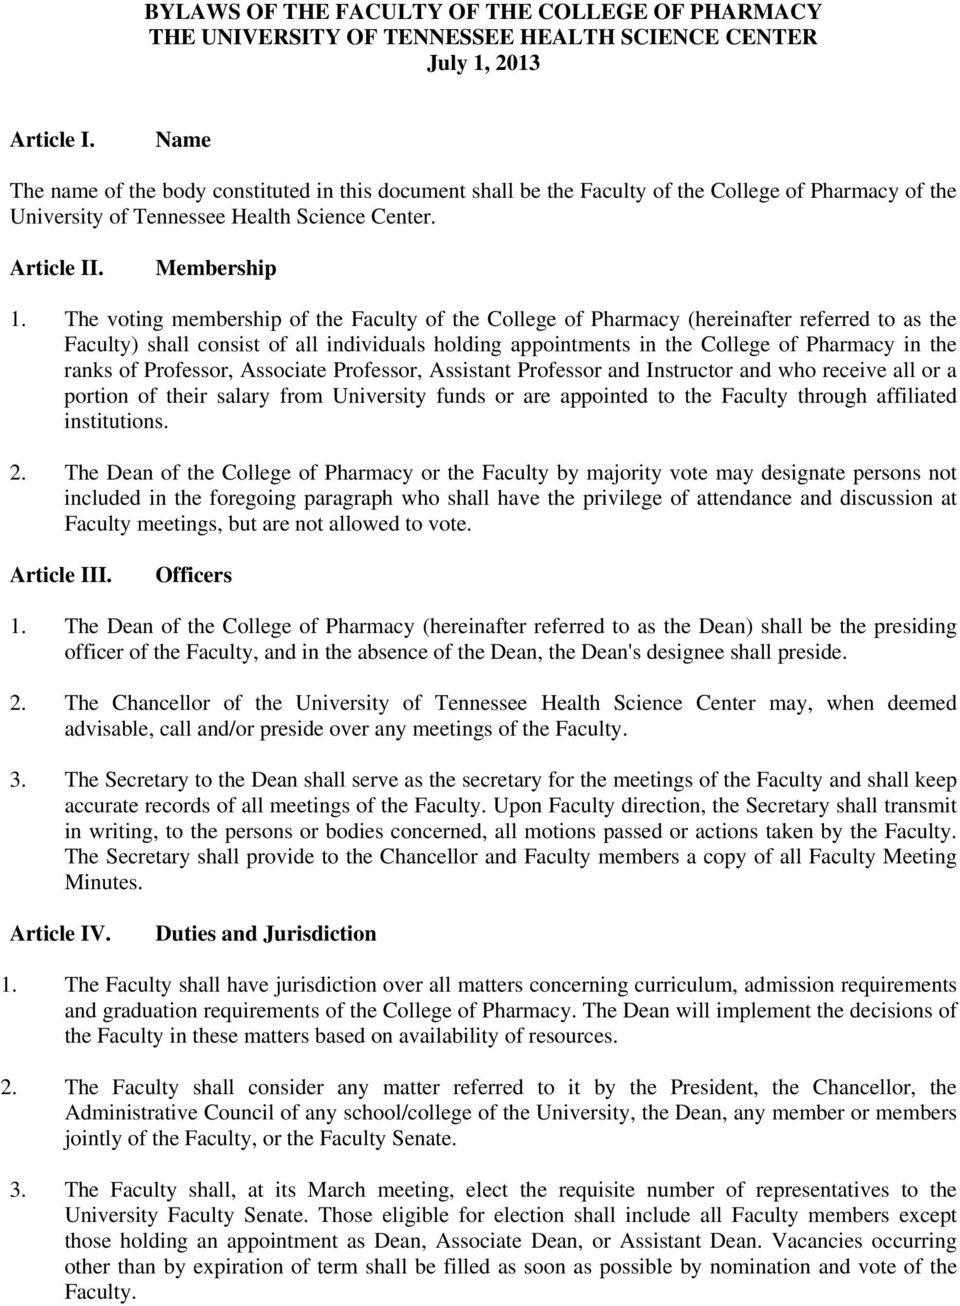 The voting membership of the Faculty of the College of Pharmacy (hereinafter referred to as the Faculty) shall consist of all individuals holding appointments in the College of Pharmacy in the ranks